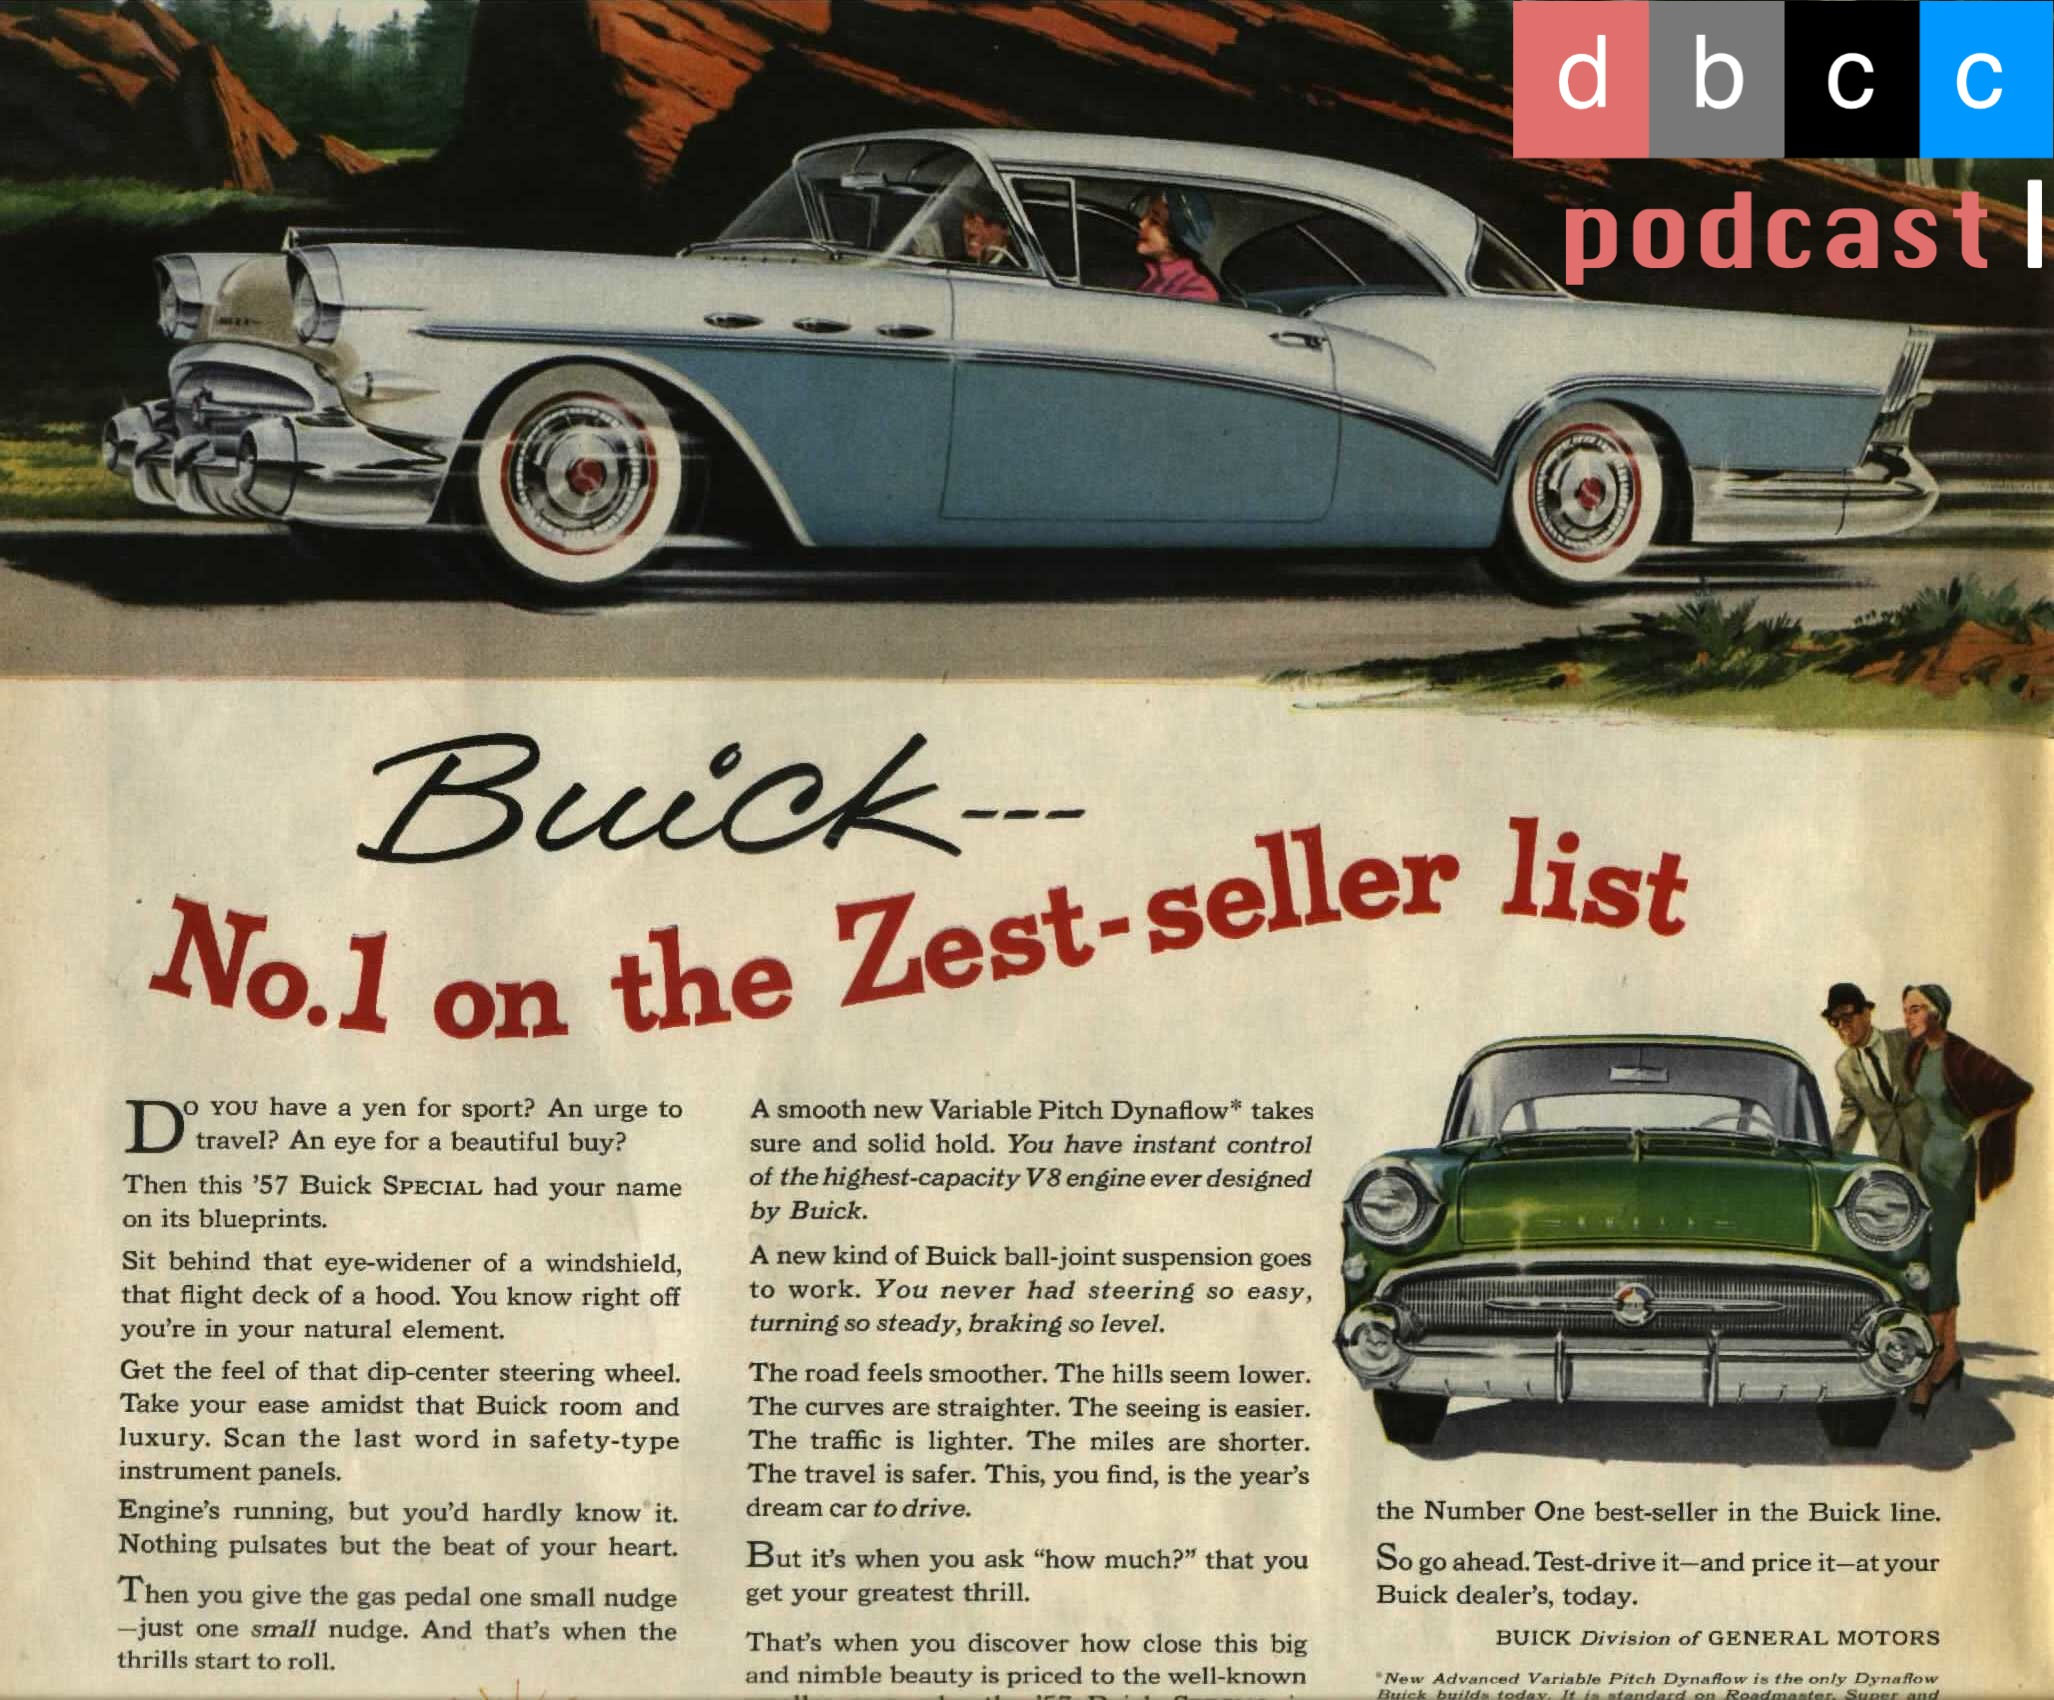 DBCC Podcast Buick.jpg